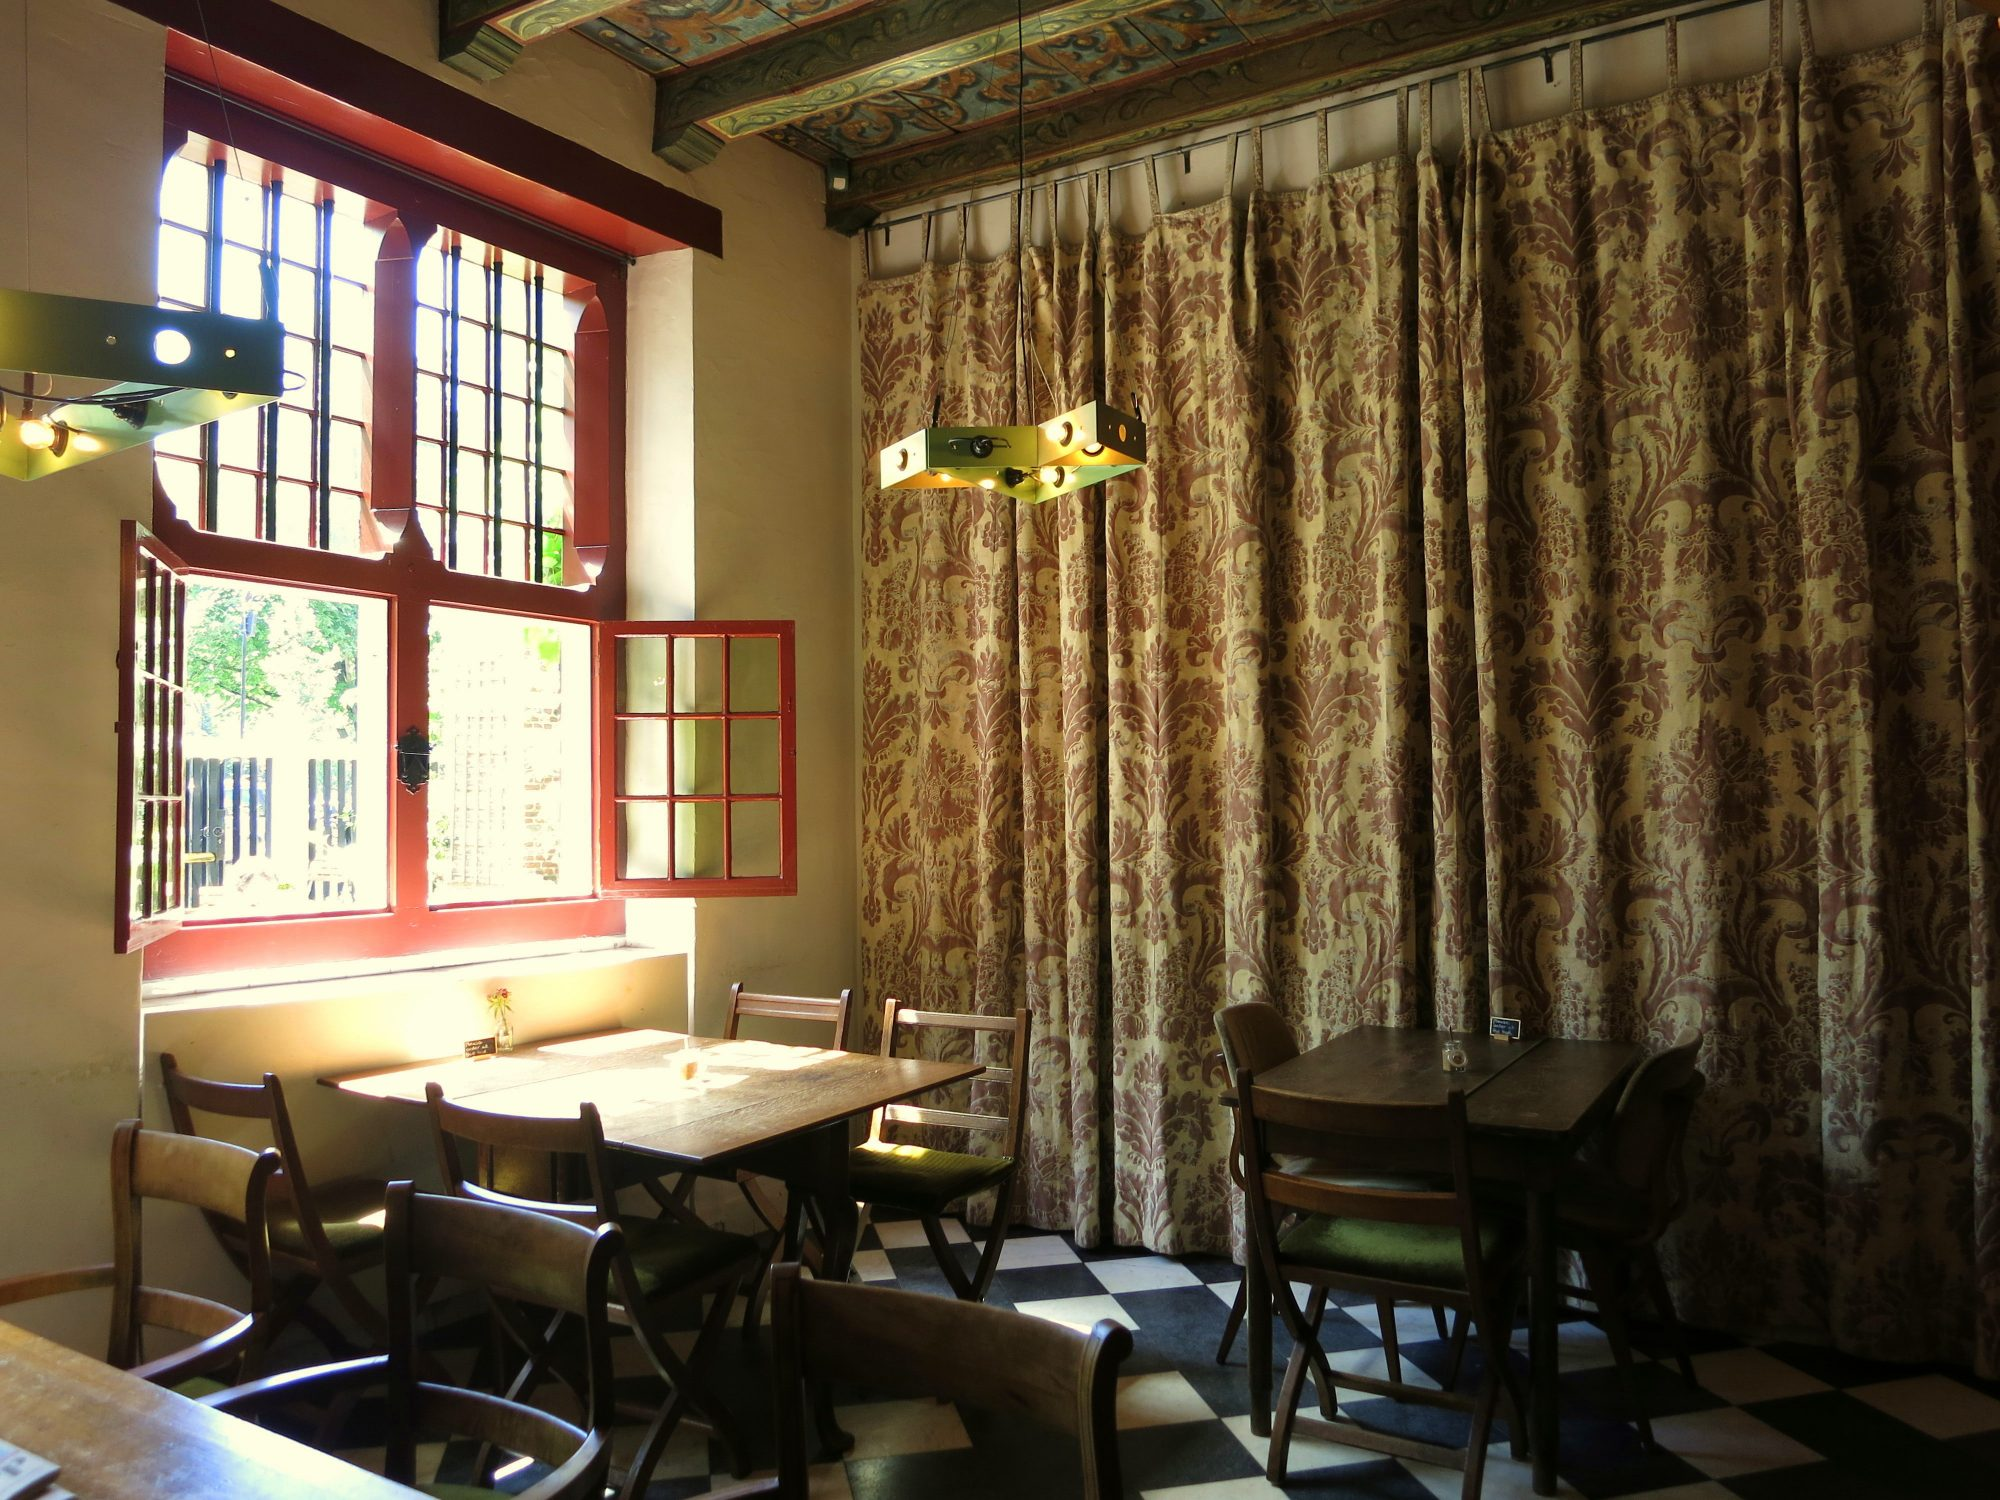 Hidden away in plain sight in the heart of one of the city's busiest areas is a secret garden and a lovely lunchroom and coffee shop.Koffieschenkerij De Oude Kerk is a wonderful small cafe housed in the oldest building in Amsterdam, the Oude Kerk.